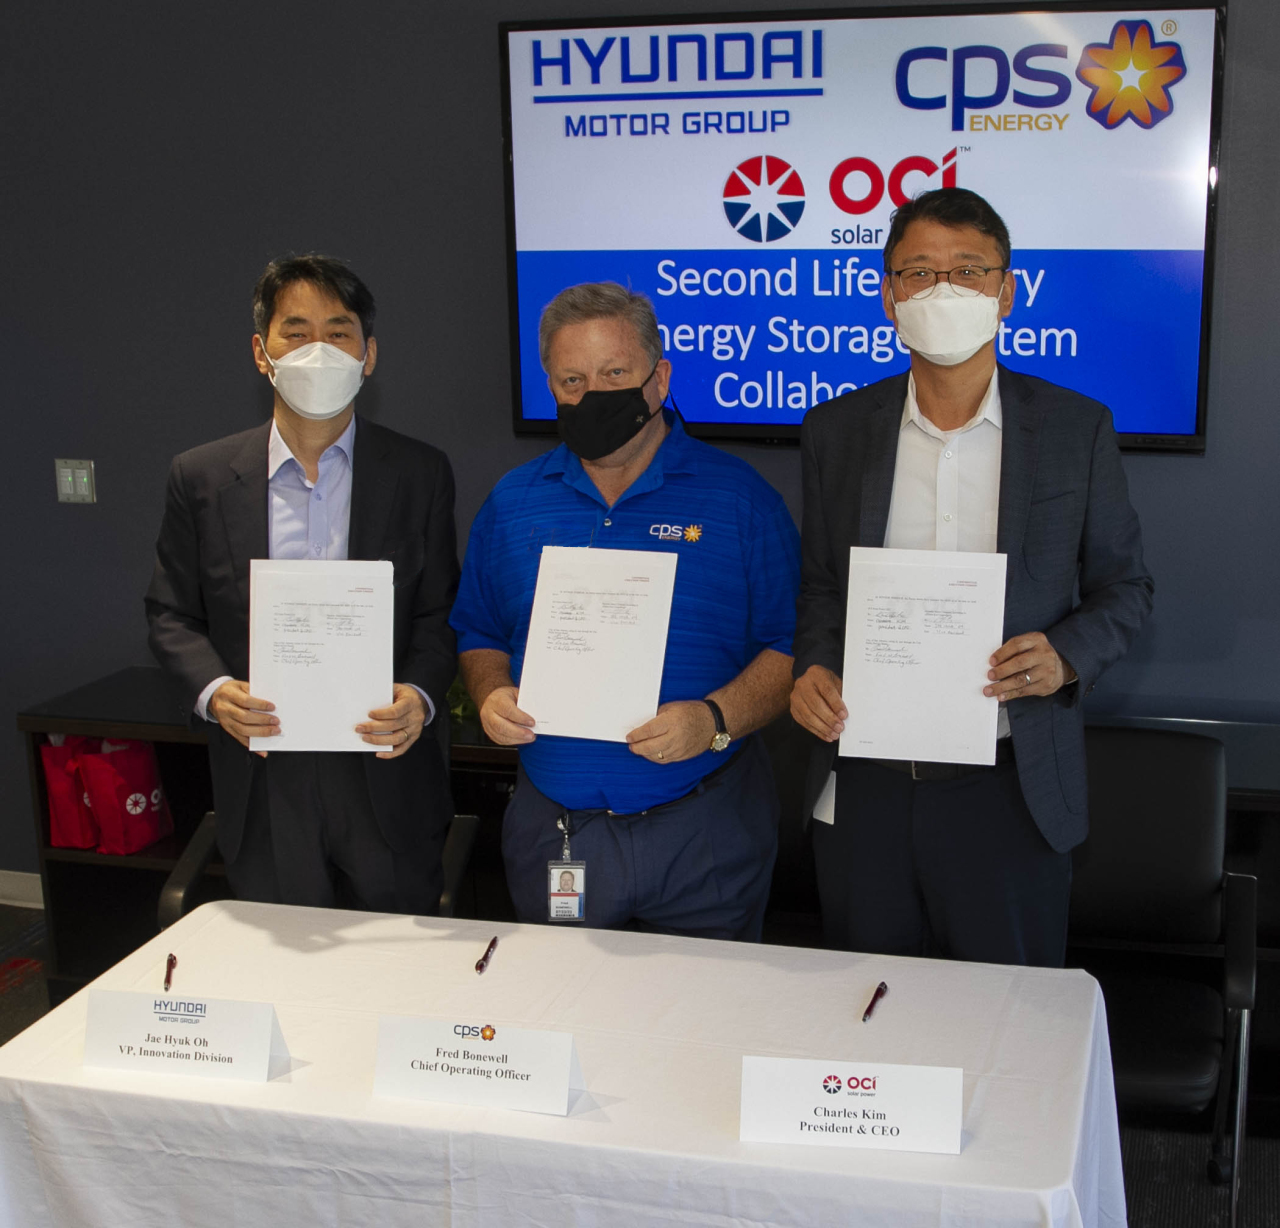 From left: Hyundai Motor Group Vice President Oh Jae-hyuk, CPS Energy Chief Operating Officer Fred Bonewell and OCI Solar Power CEO Charles Kim pose after signing an agreement to establish an ESS facility using spent-up EV batteries at OCI Solar Power headquarters in San Antonio, Texas, on Tuesday. (Hyundai Motor Group)